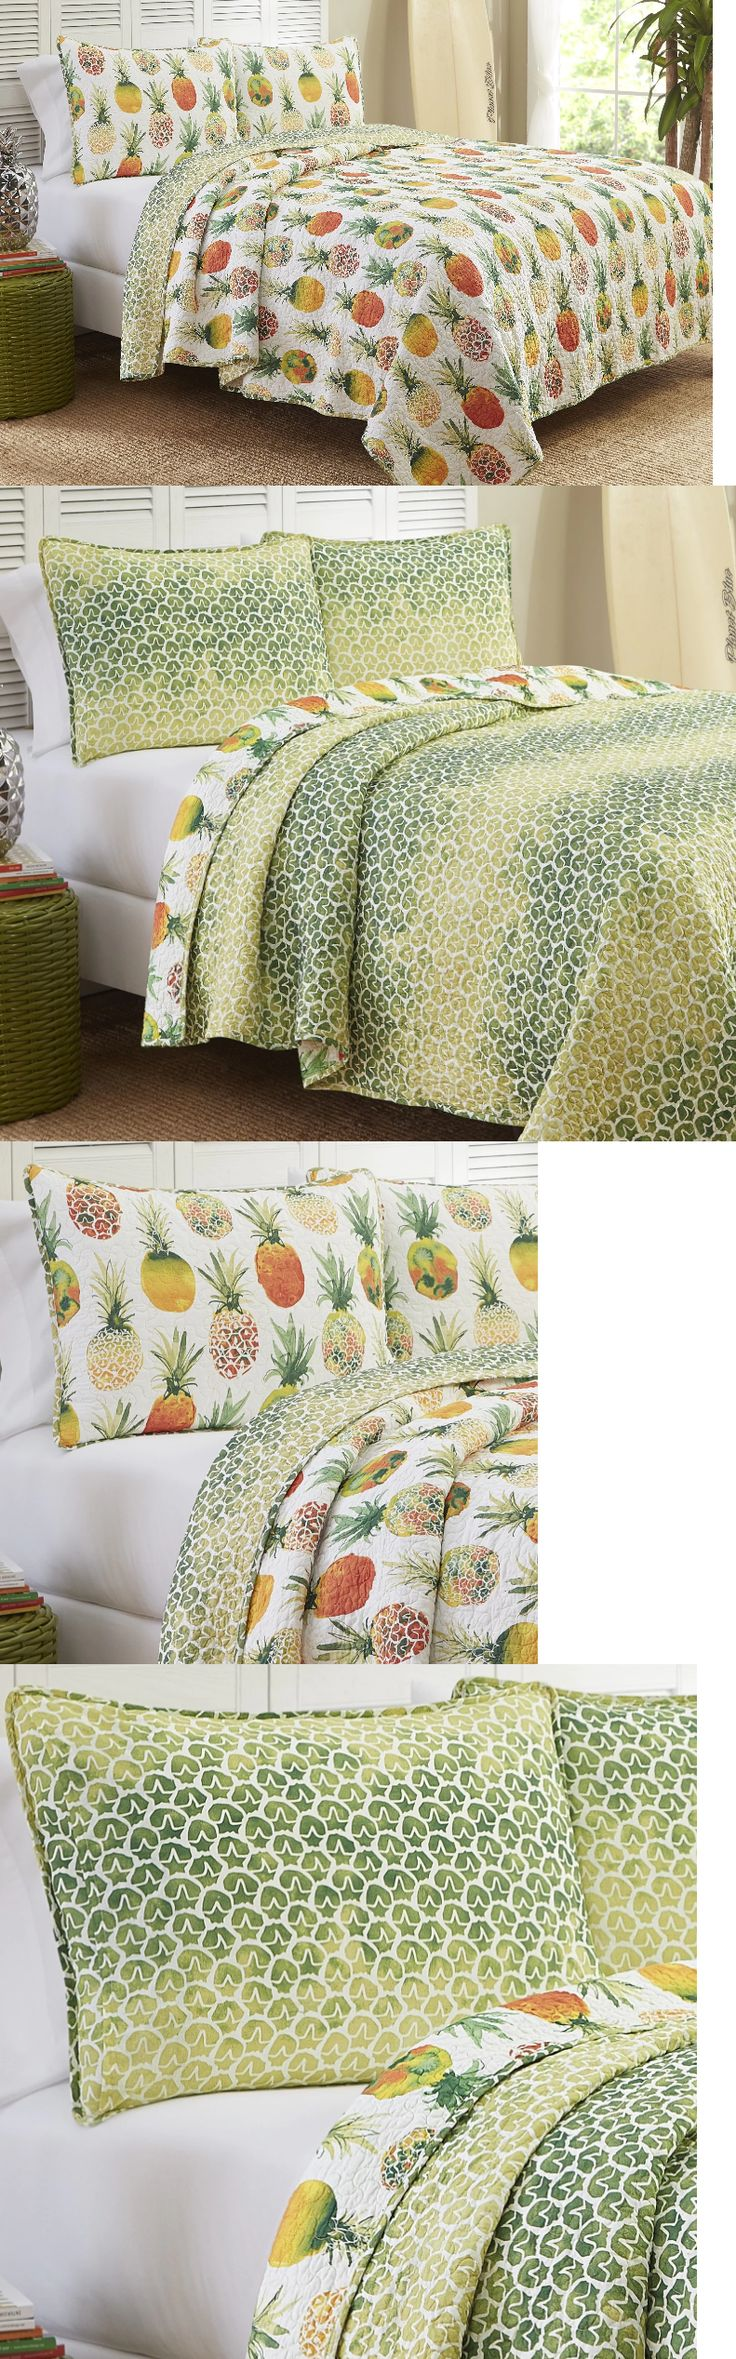 Quilts 66730: Tropical Hawaiian Pineapple 3-Pc Reversible Quilt Set King Cotton Bedding -> BUY IT NOW ONLY: $114.31 on eBay!